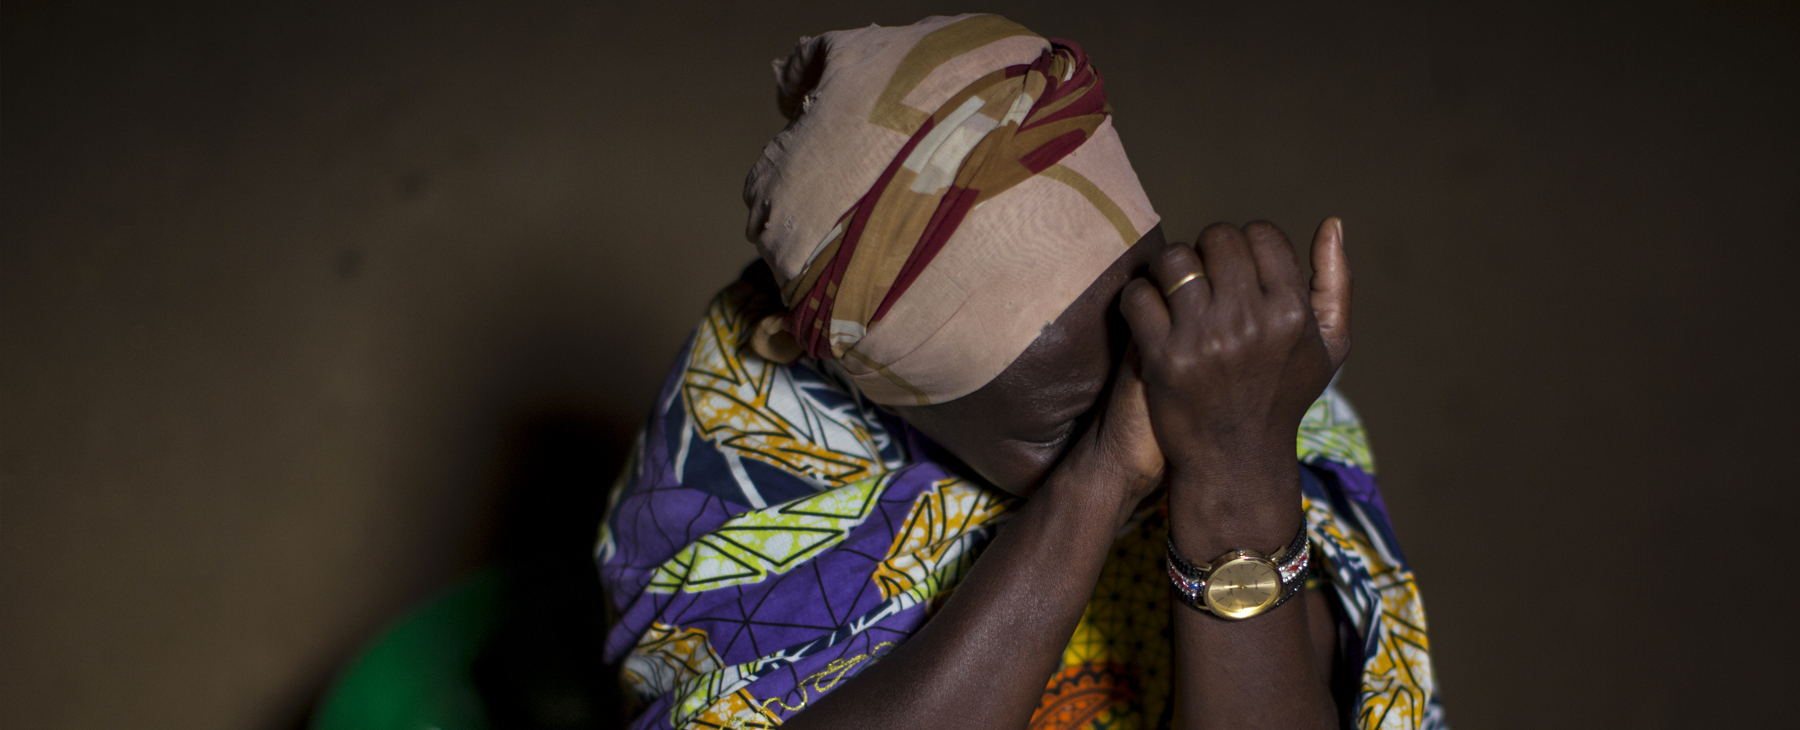 An end to impunity for sexual violence in Burundi